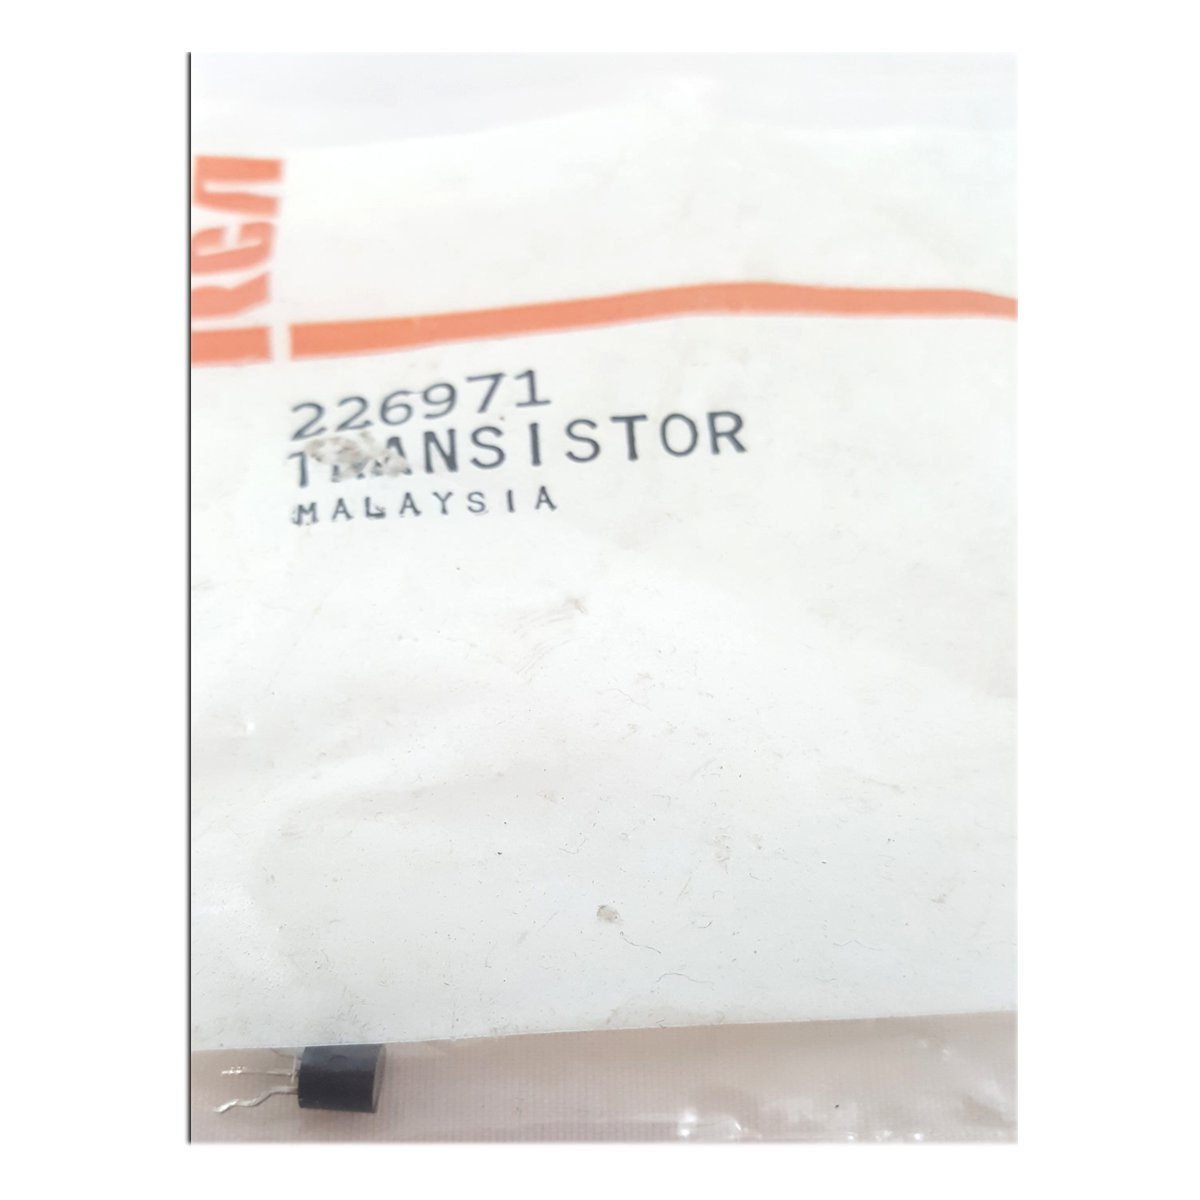 RCA VCR Replacement Transistor Part No. 226971